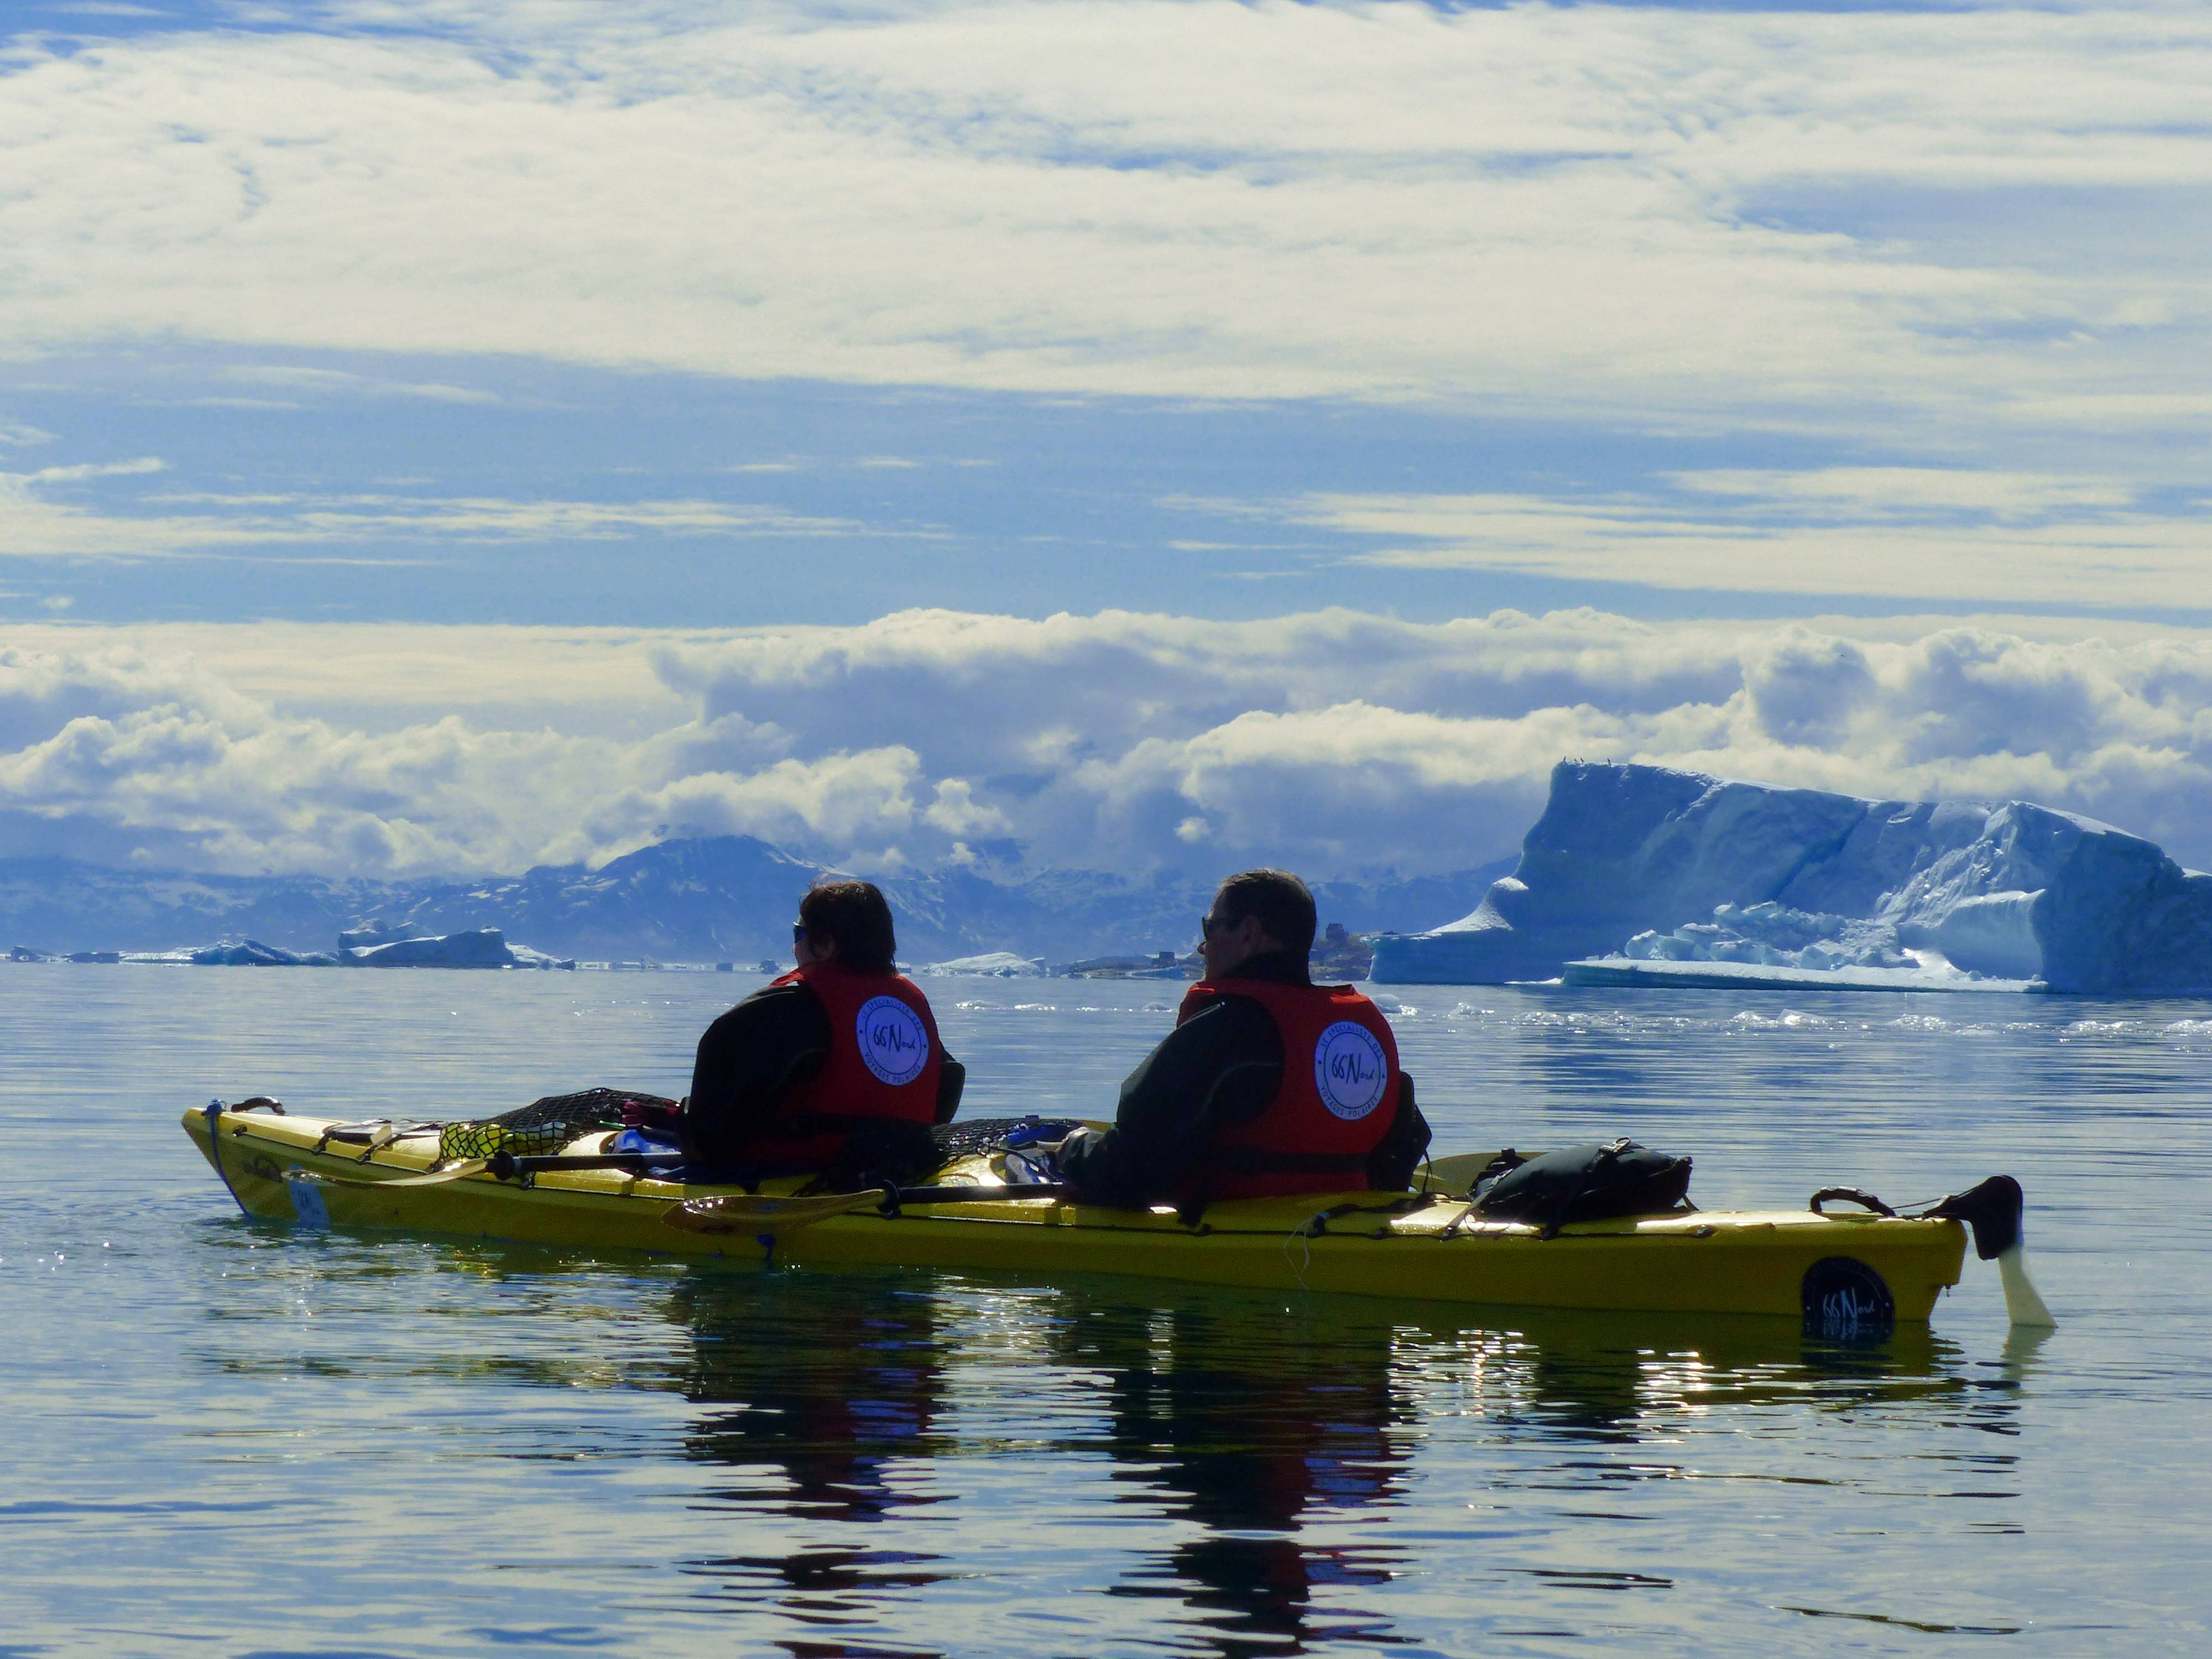 Photo 2: Faire du kayak au milieu des icebergs